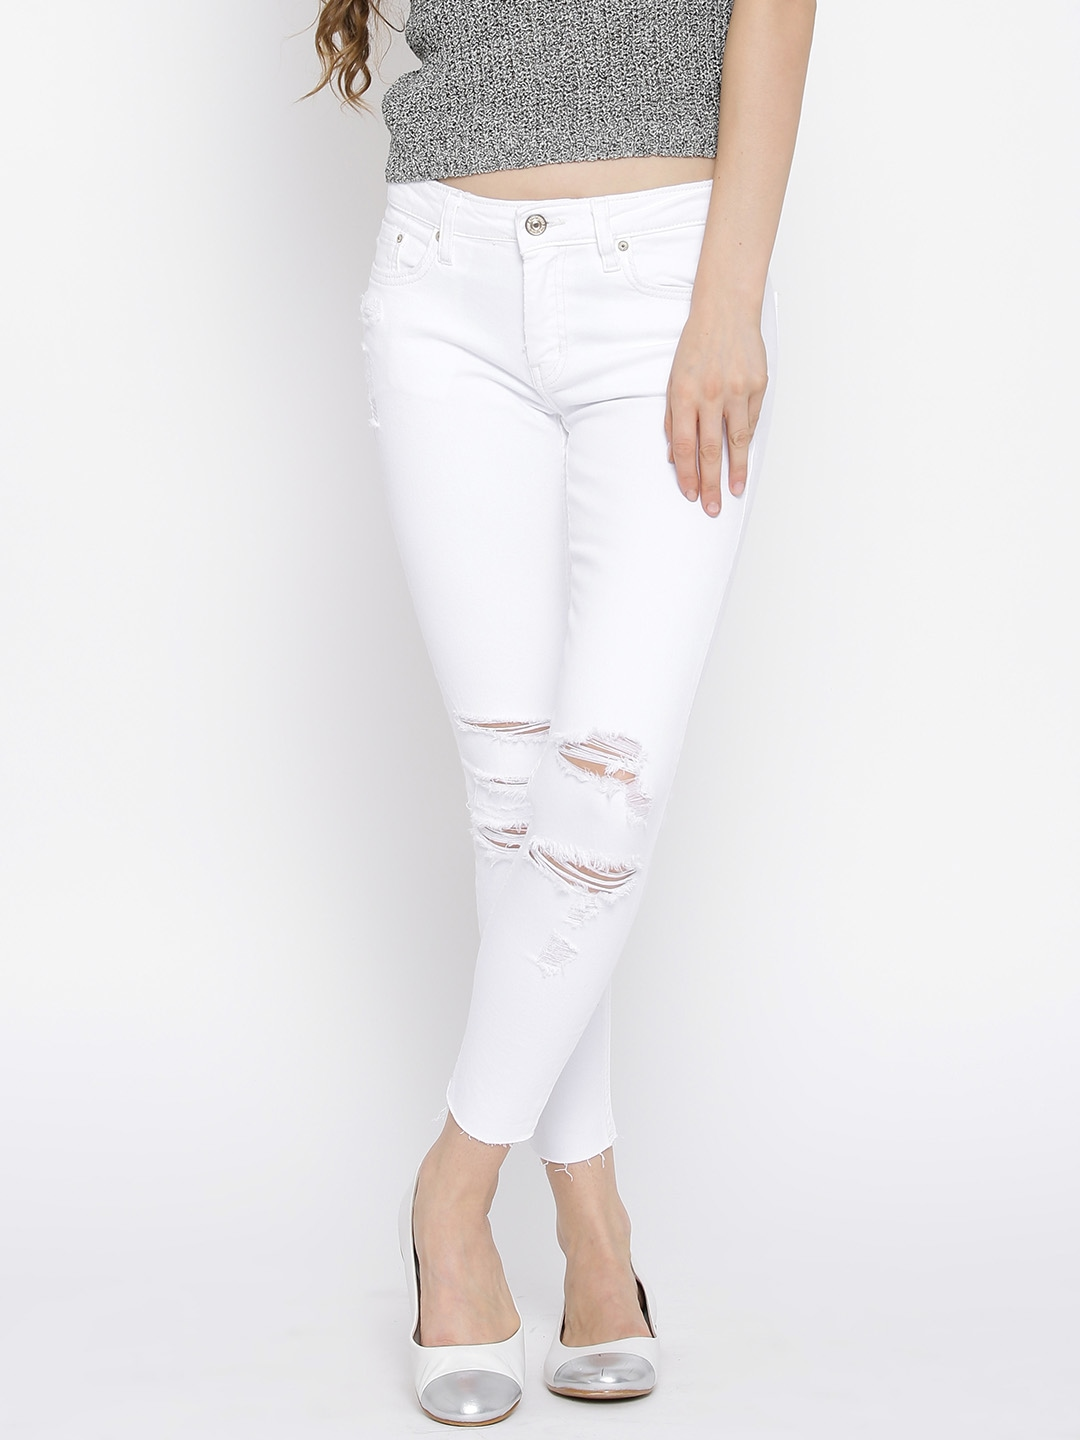 White Jeans For Women Online - Legends Jeans